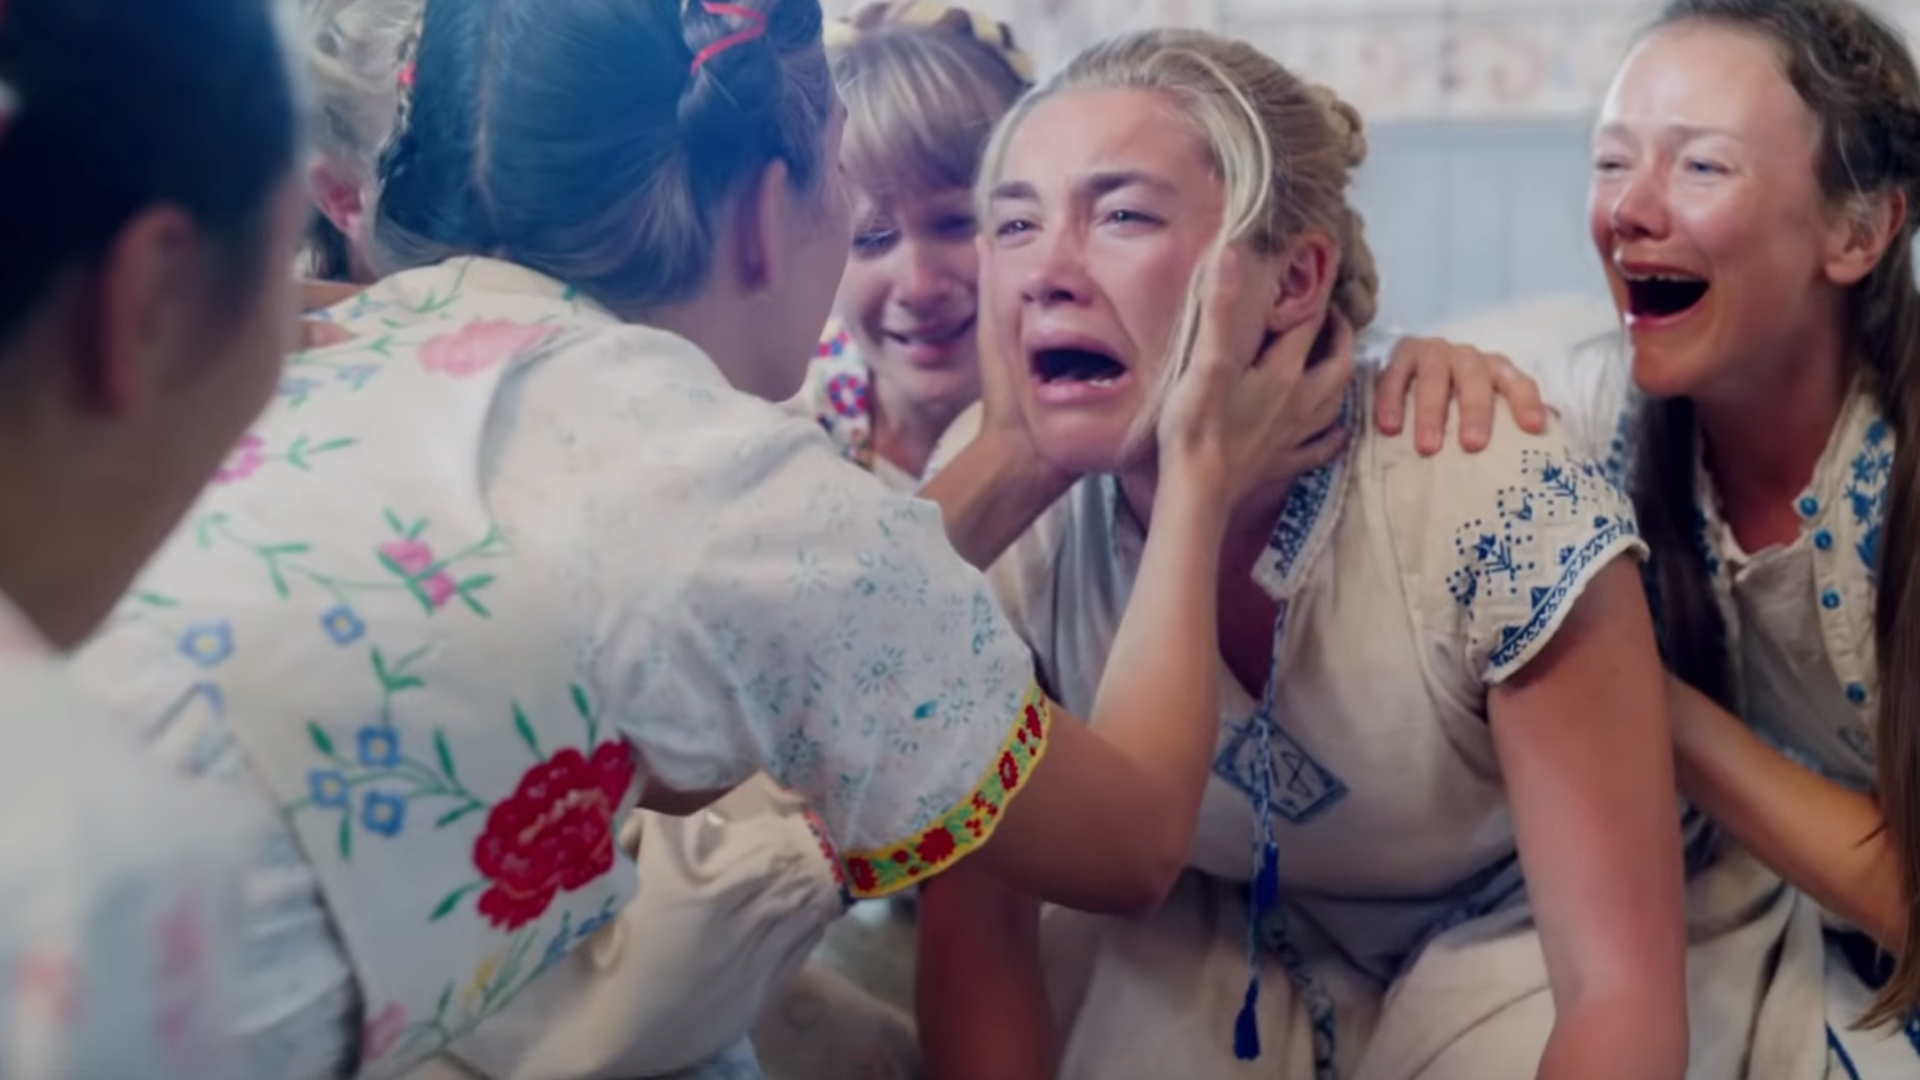 new-trailer-for-the-sinister-horror-film-midsommar-from-the-director-of-hereditary-social.jpg